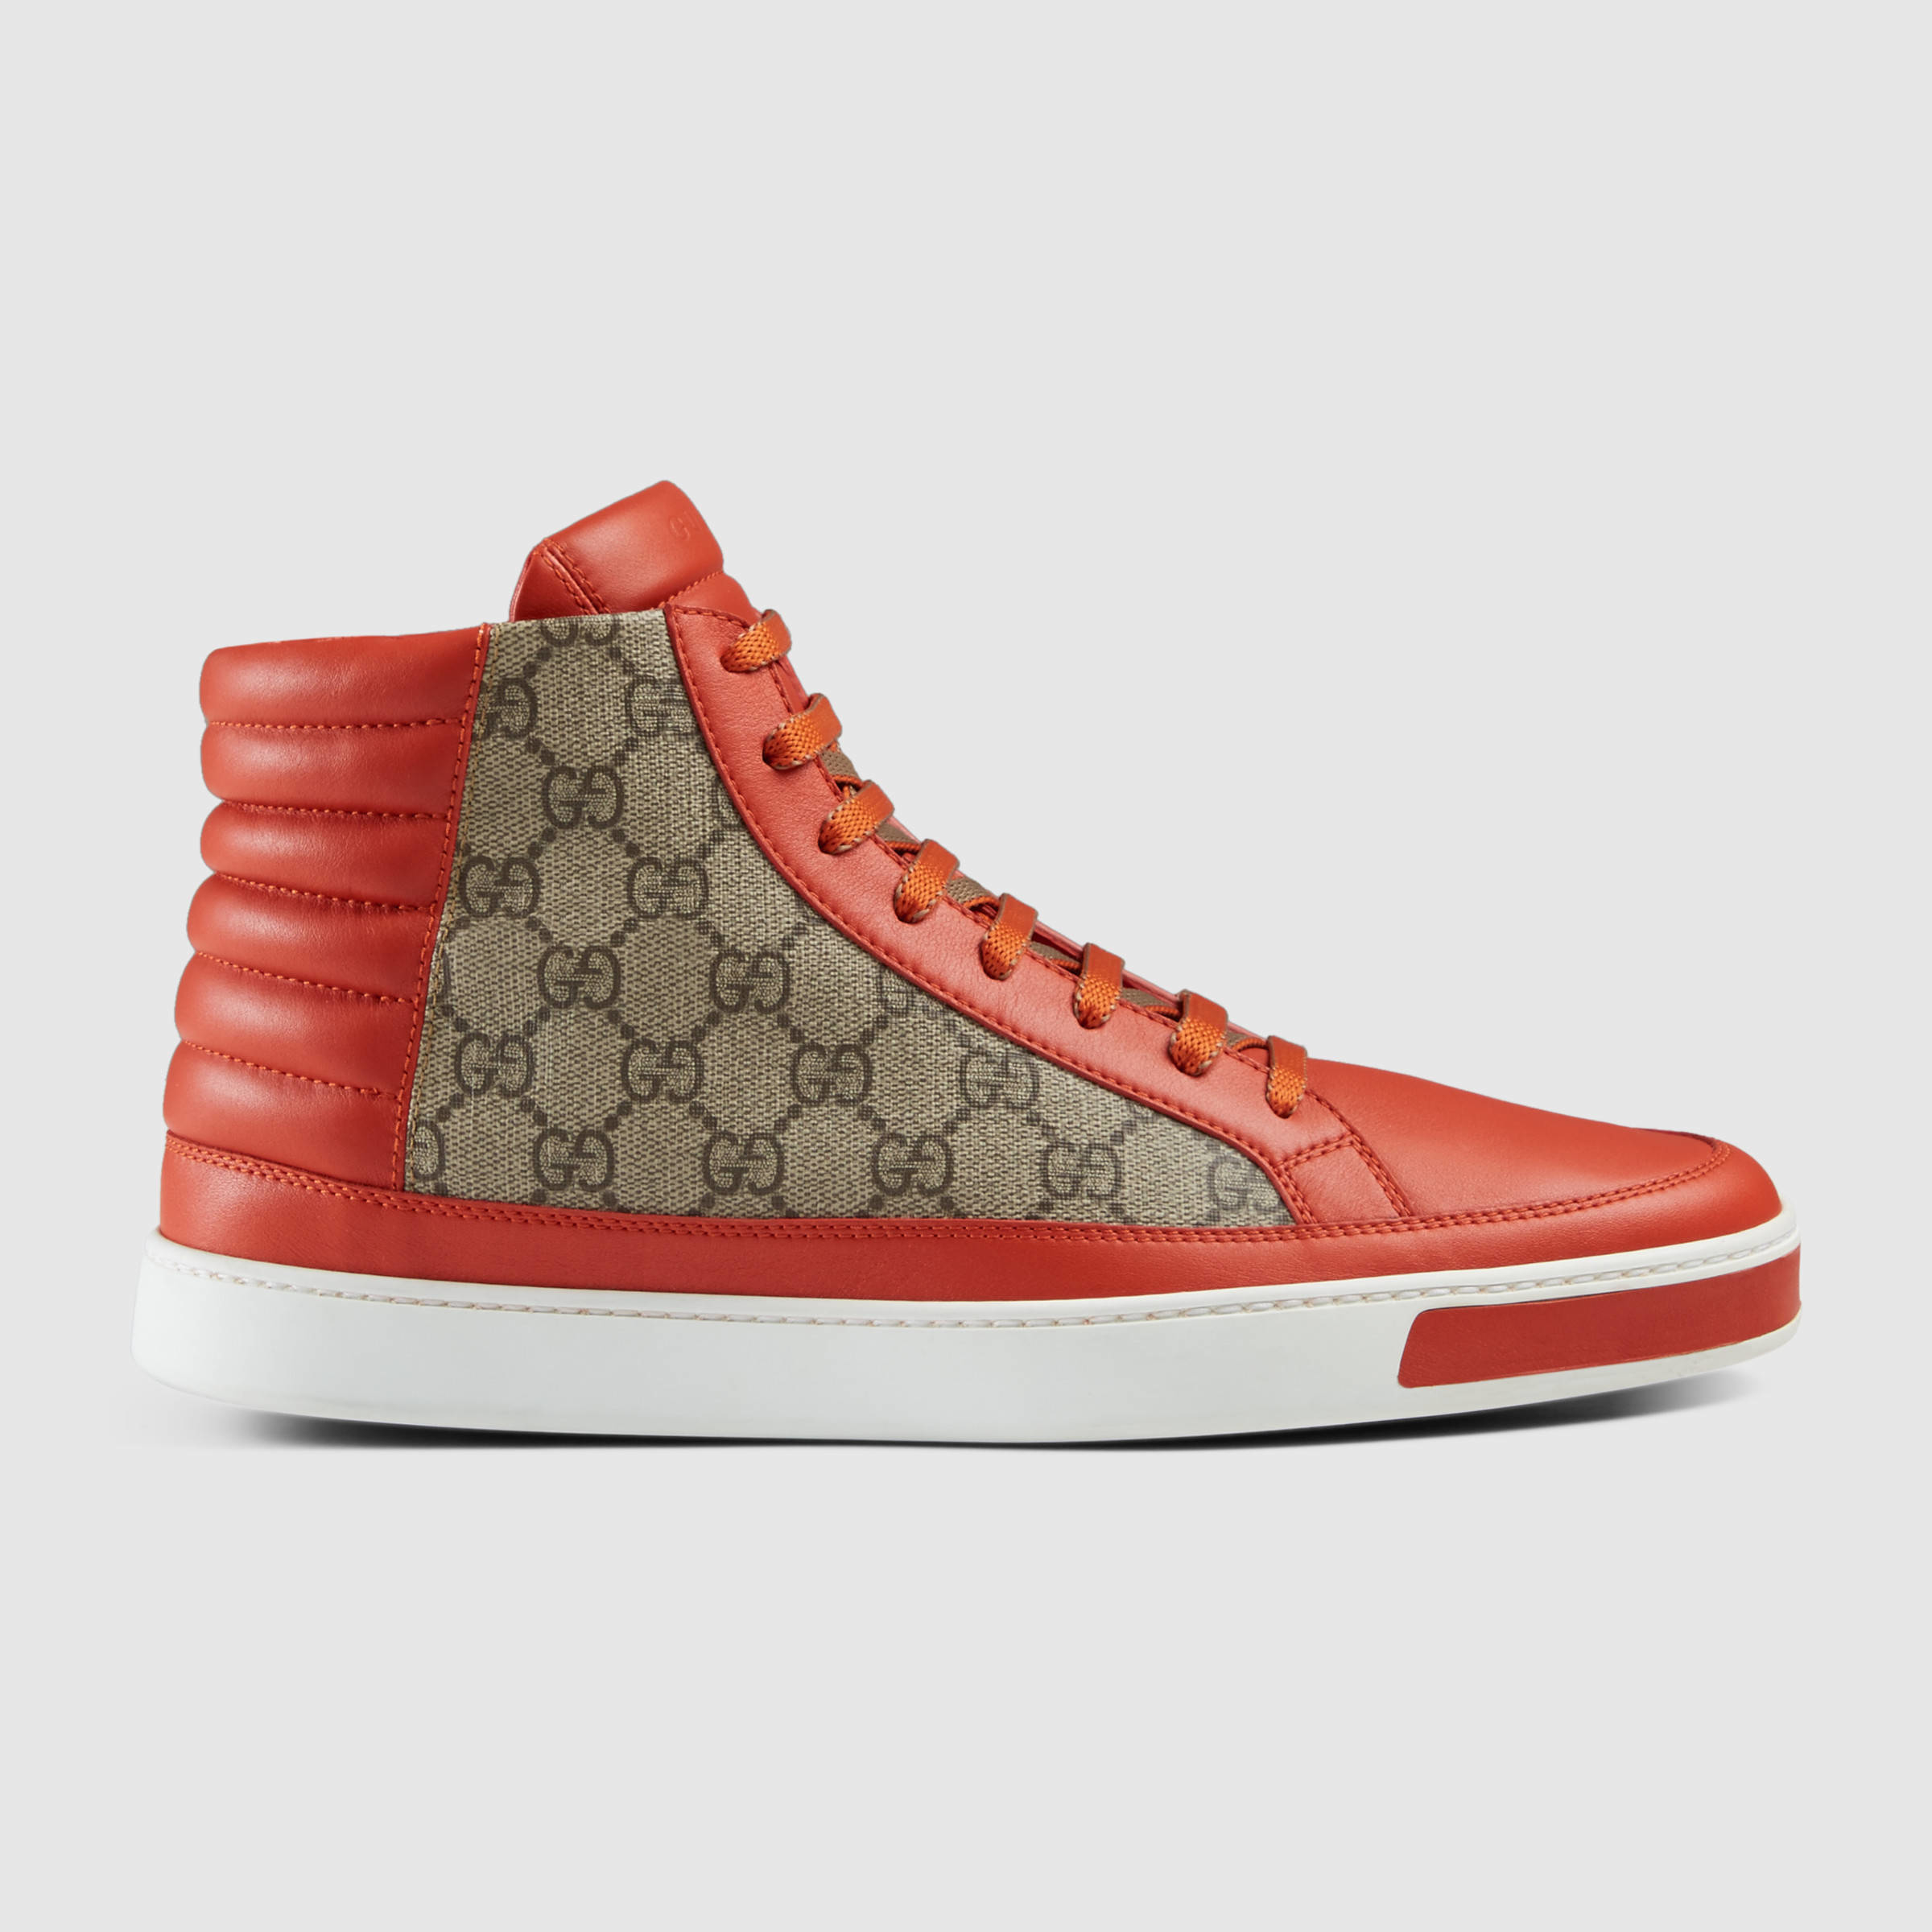 8b4405adf Gucci Gg Supreme High-top Sneaker in Red for Men - Lyst